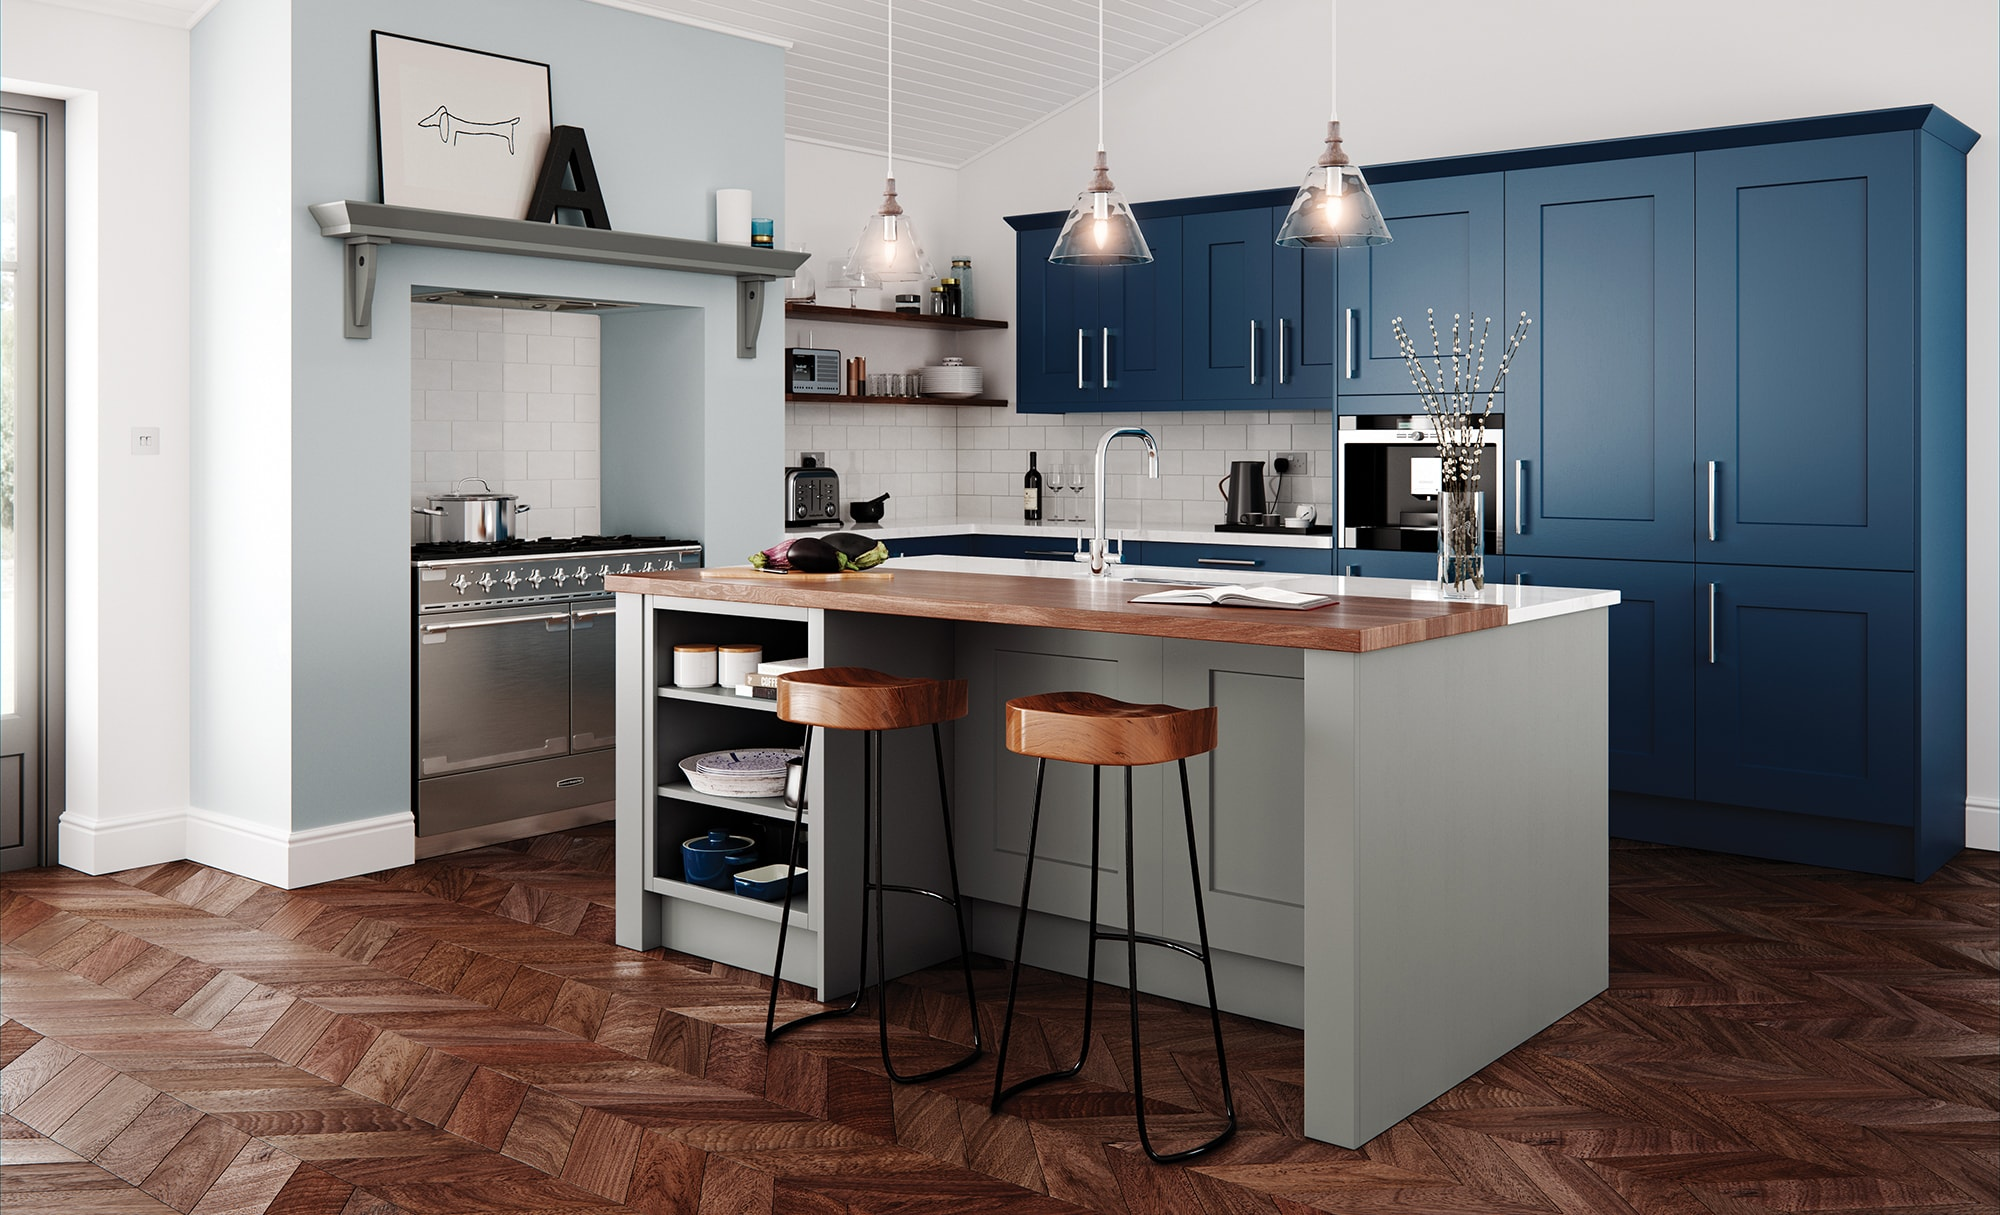 Classic Traditional Clonmel Stone and Parisian Blue image